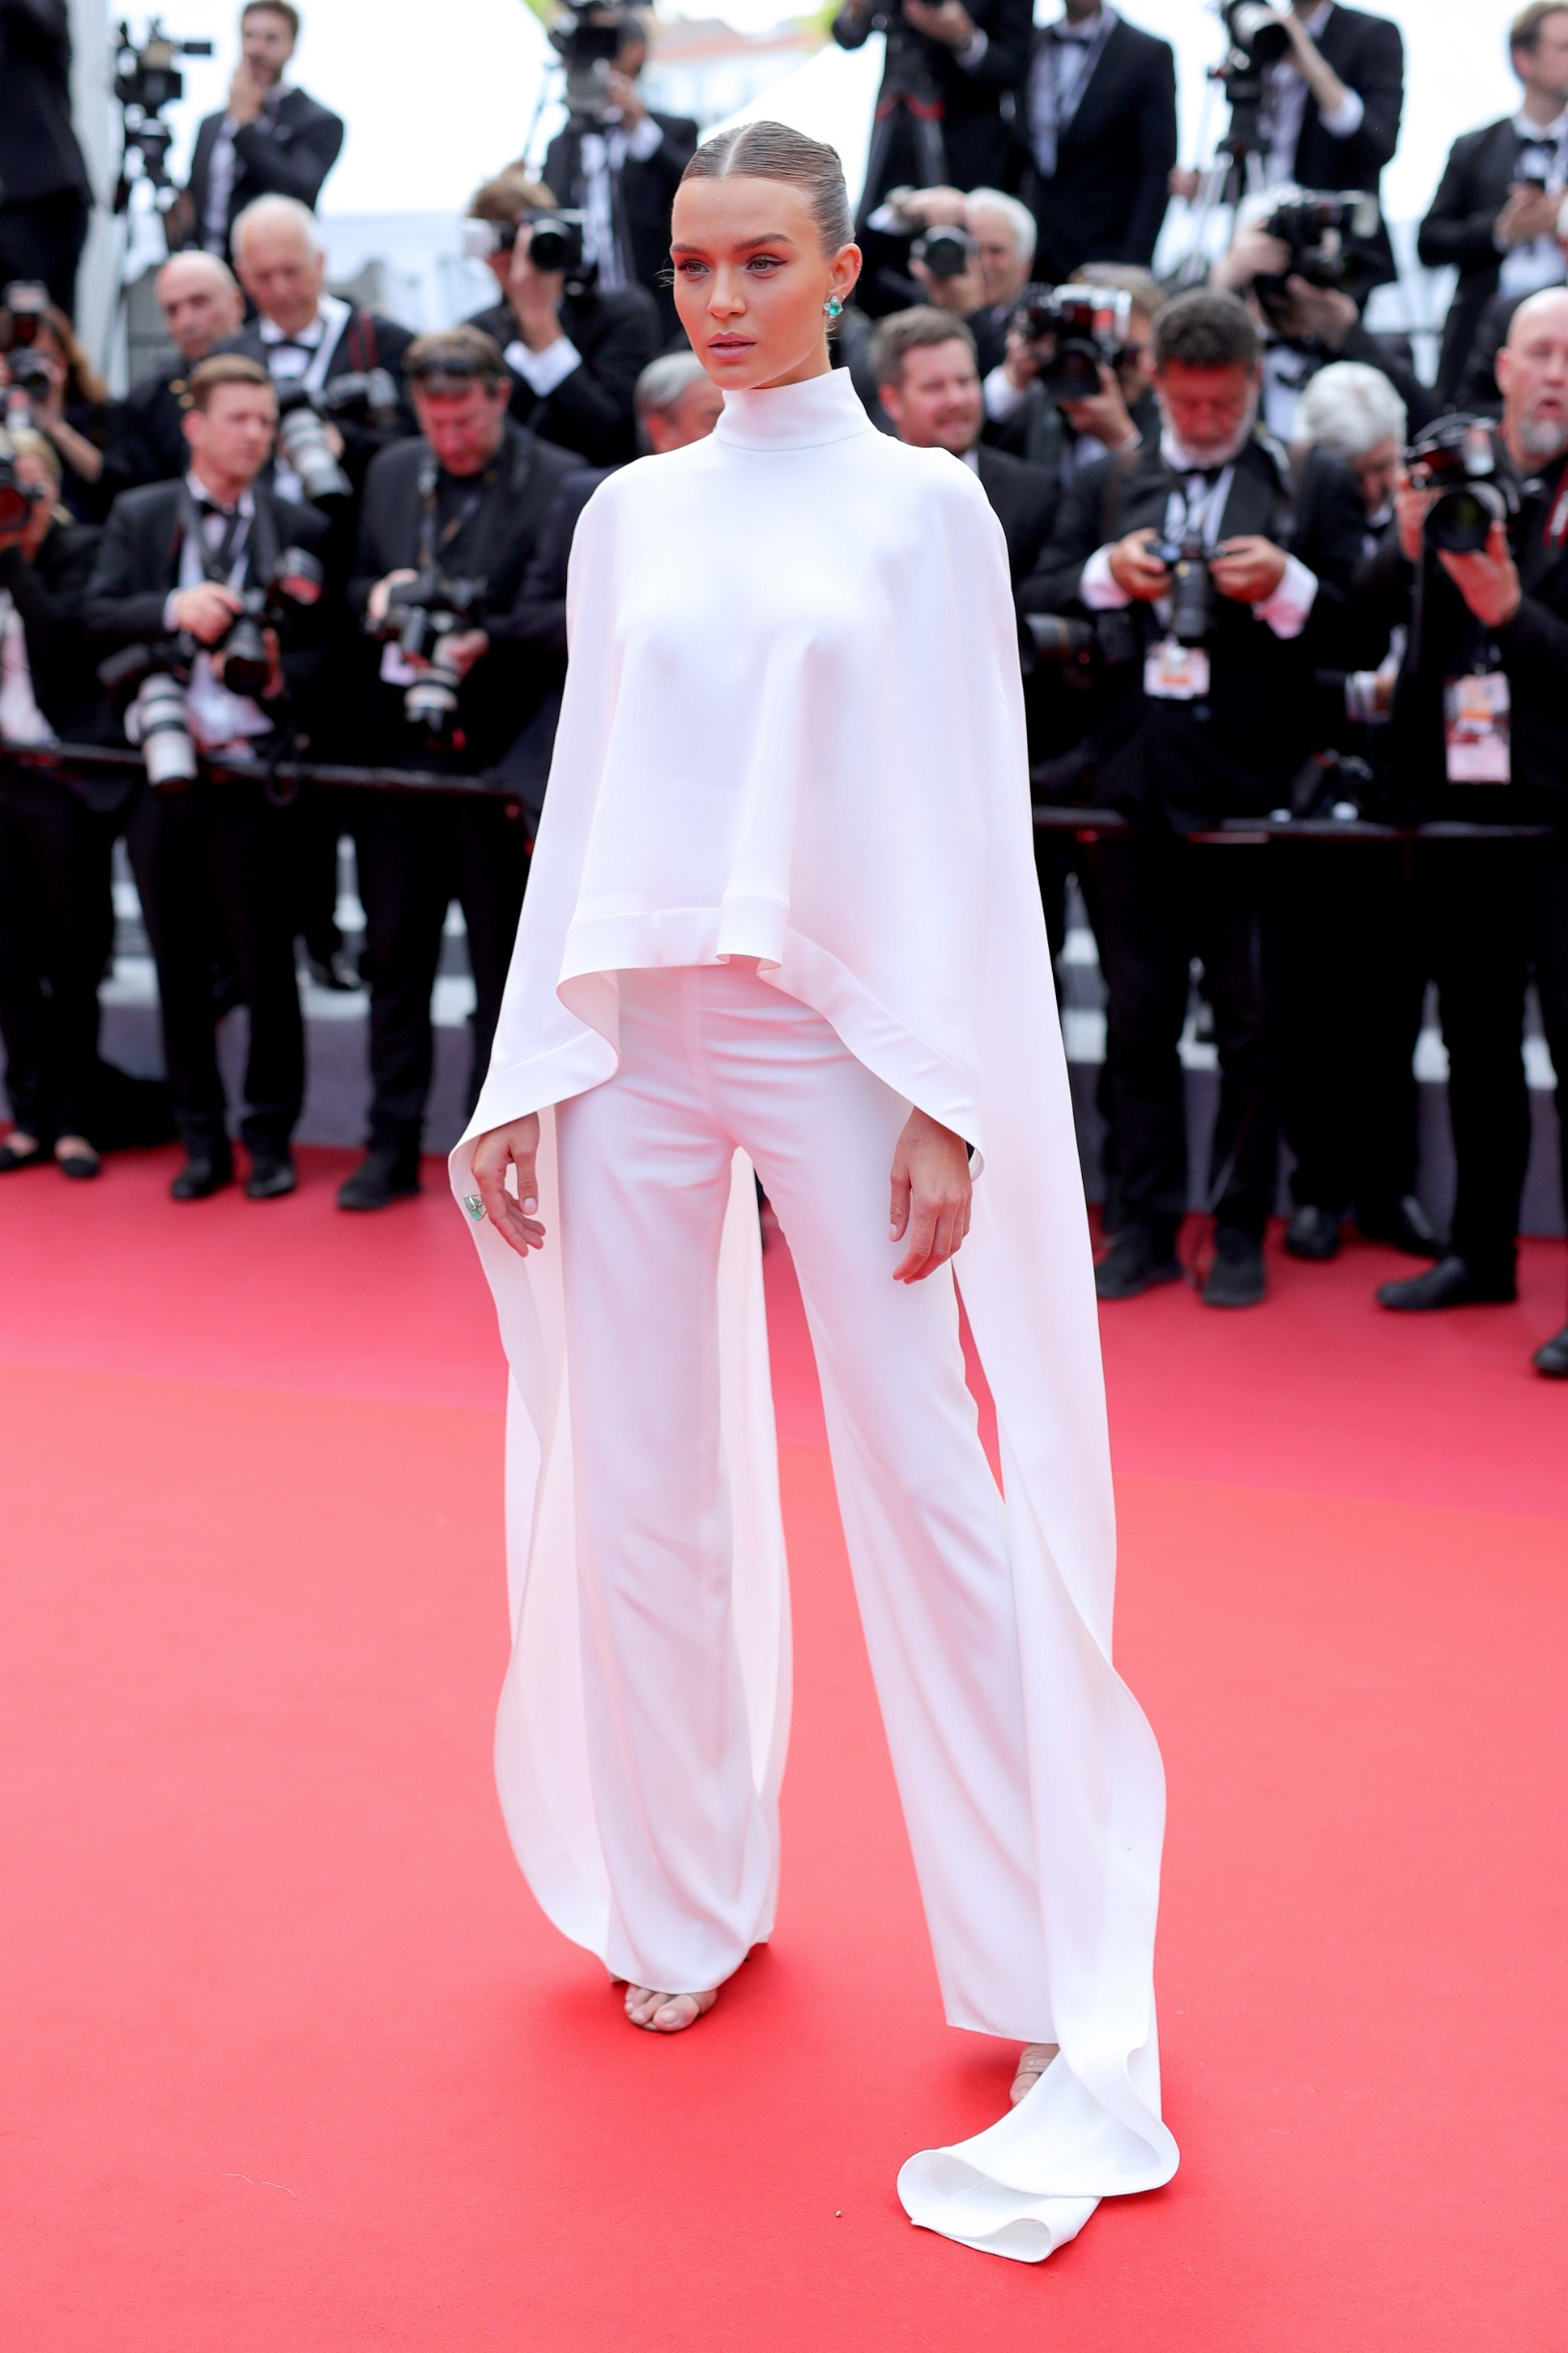 CANNES, FRANCE - MAY 22: Josephine Skriver attends the screening of